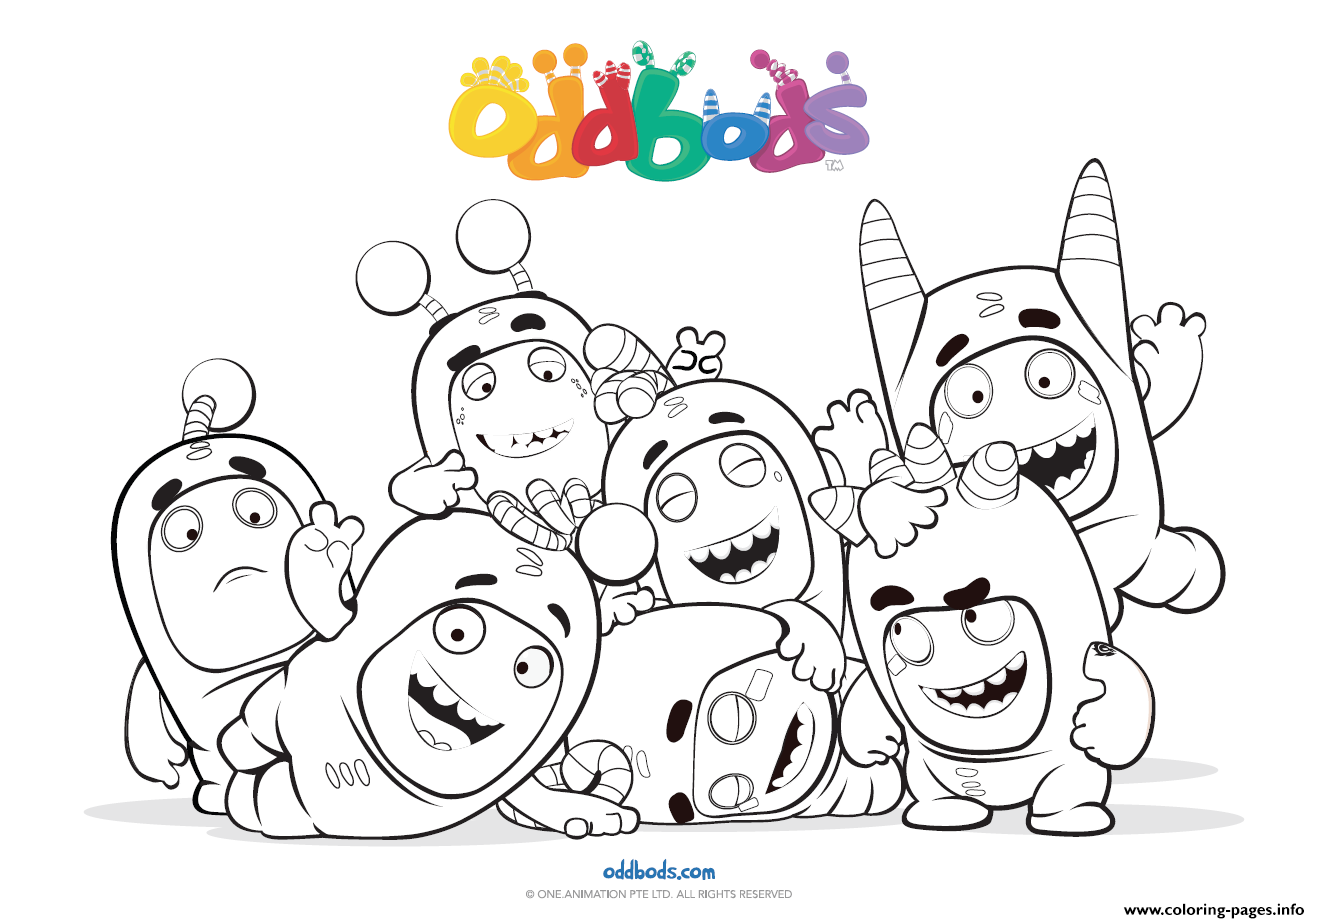 Oddbods Fun Time Kids Coloring Pages Printable